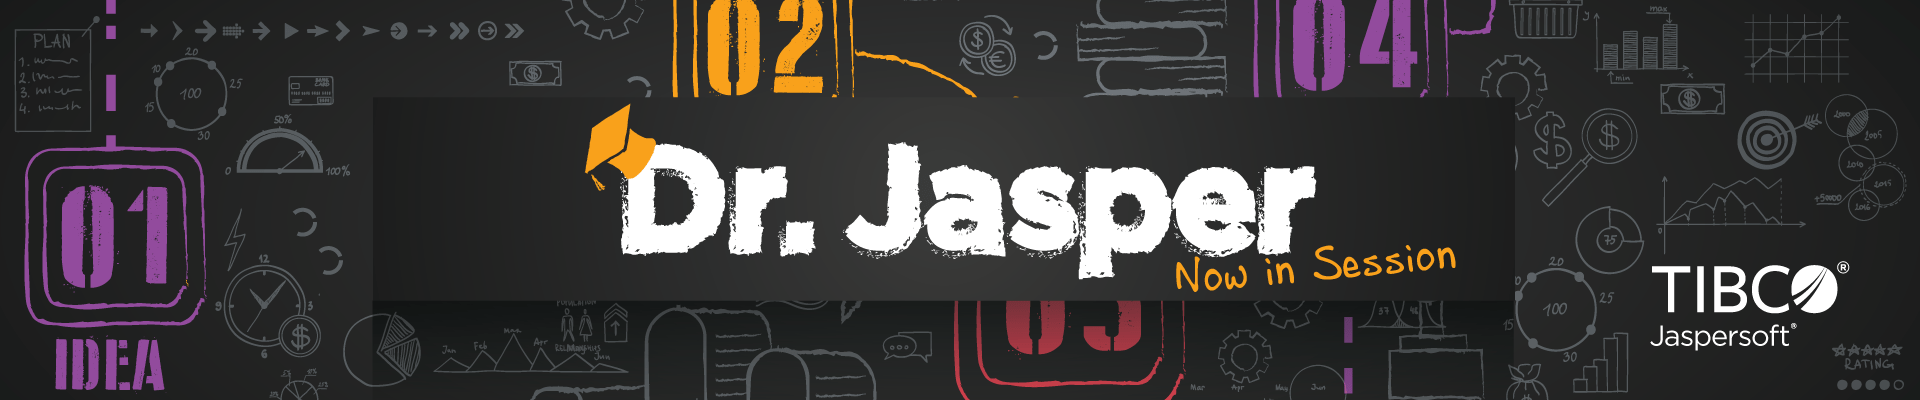 Dr. Jaspersoft Office Hours